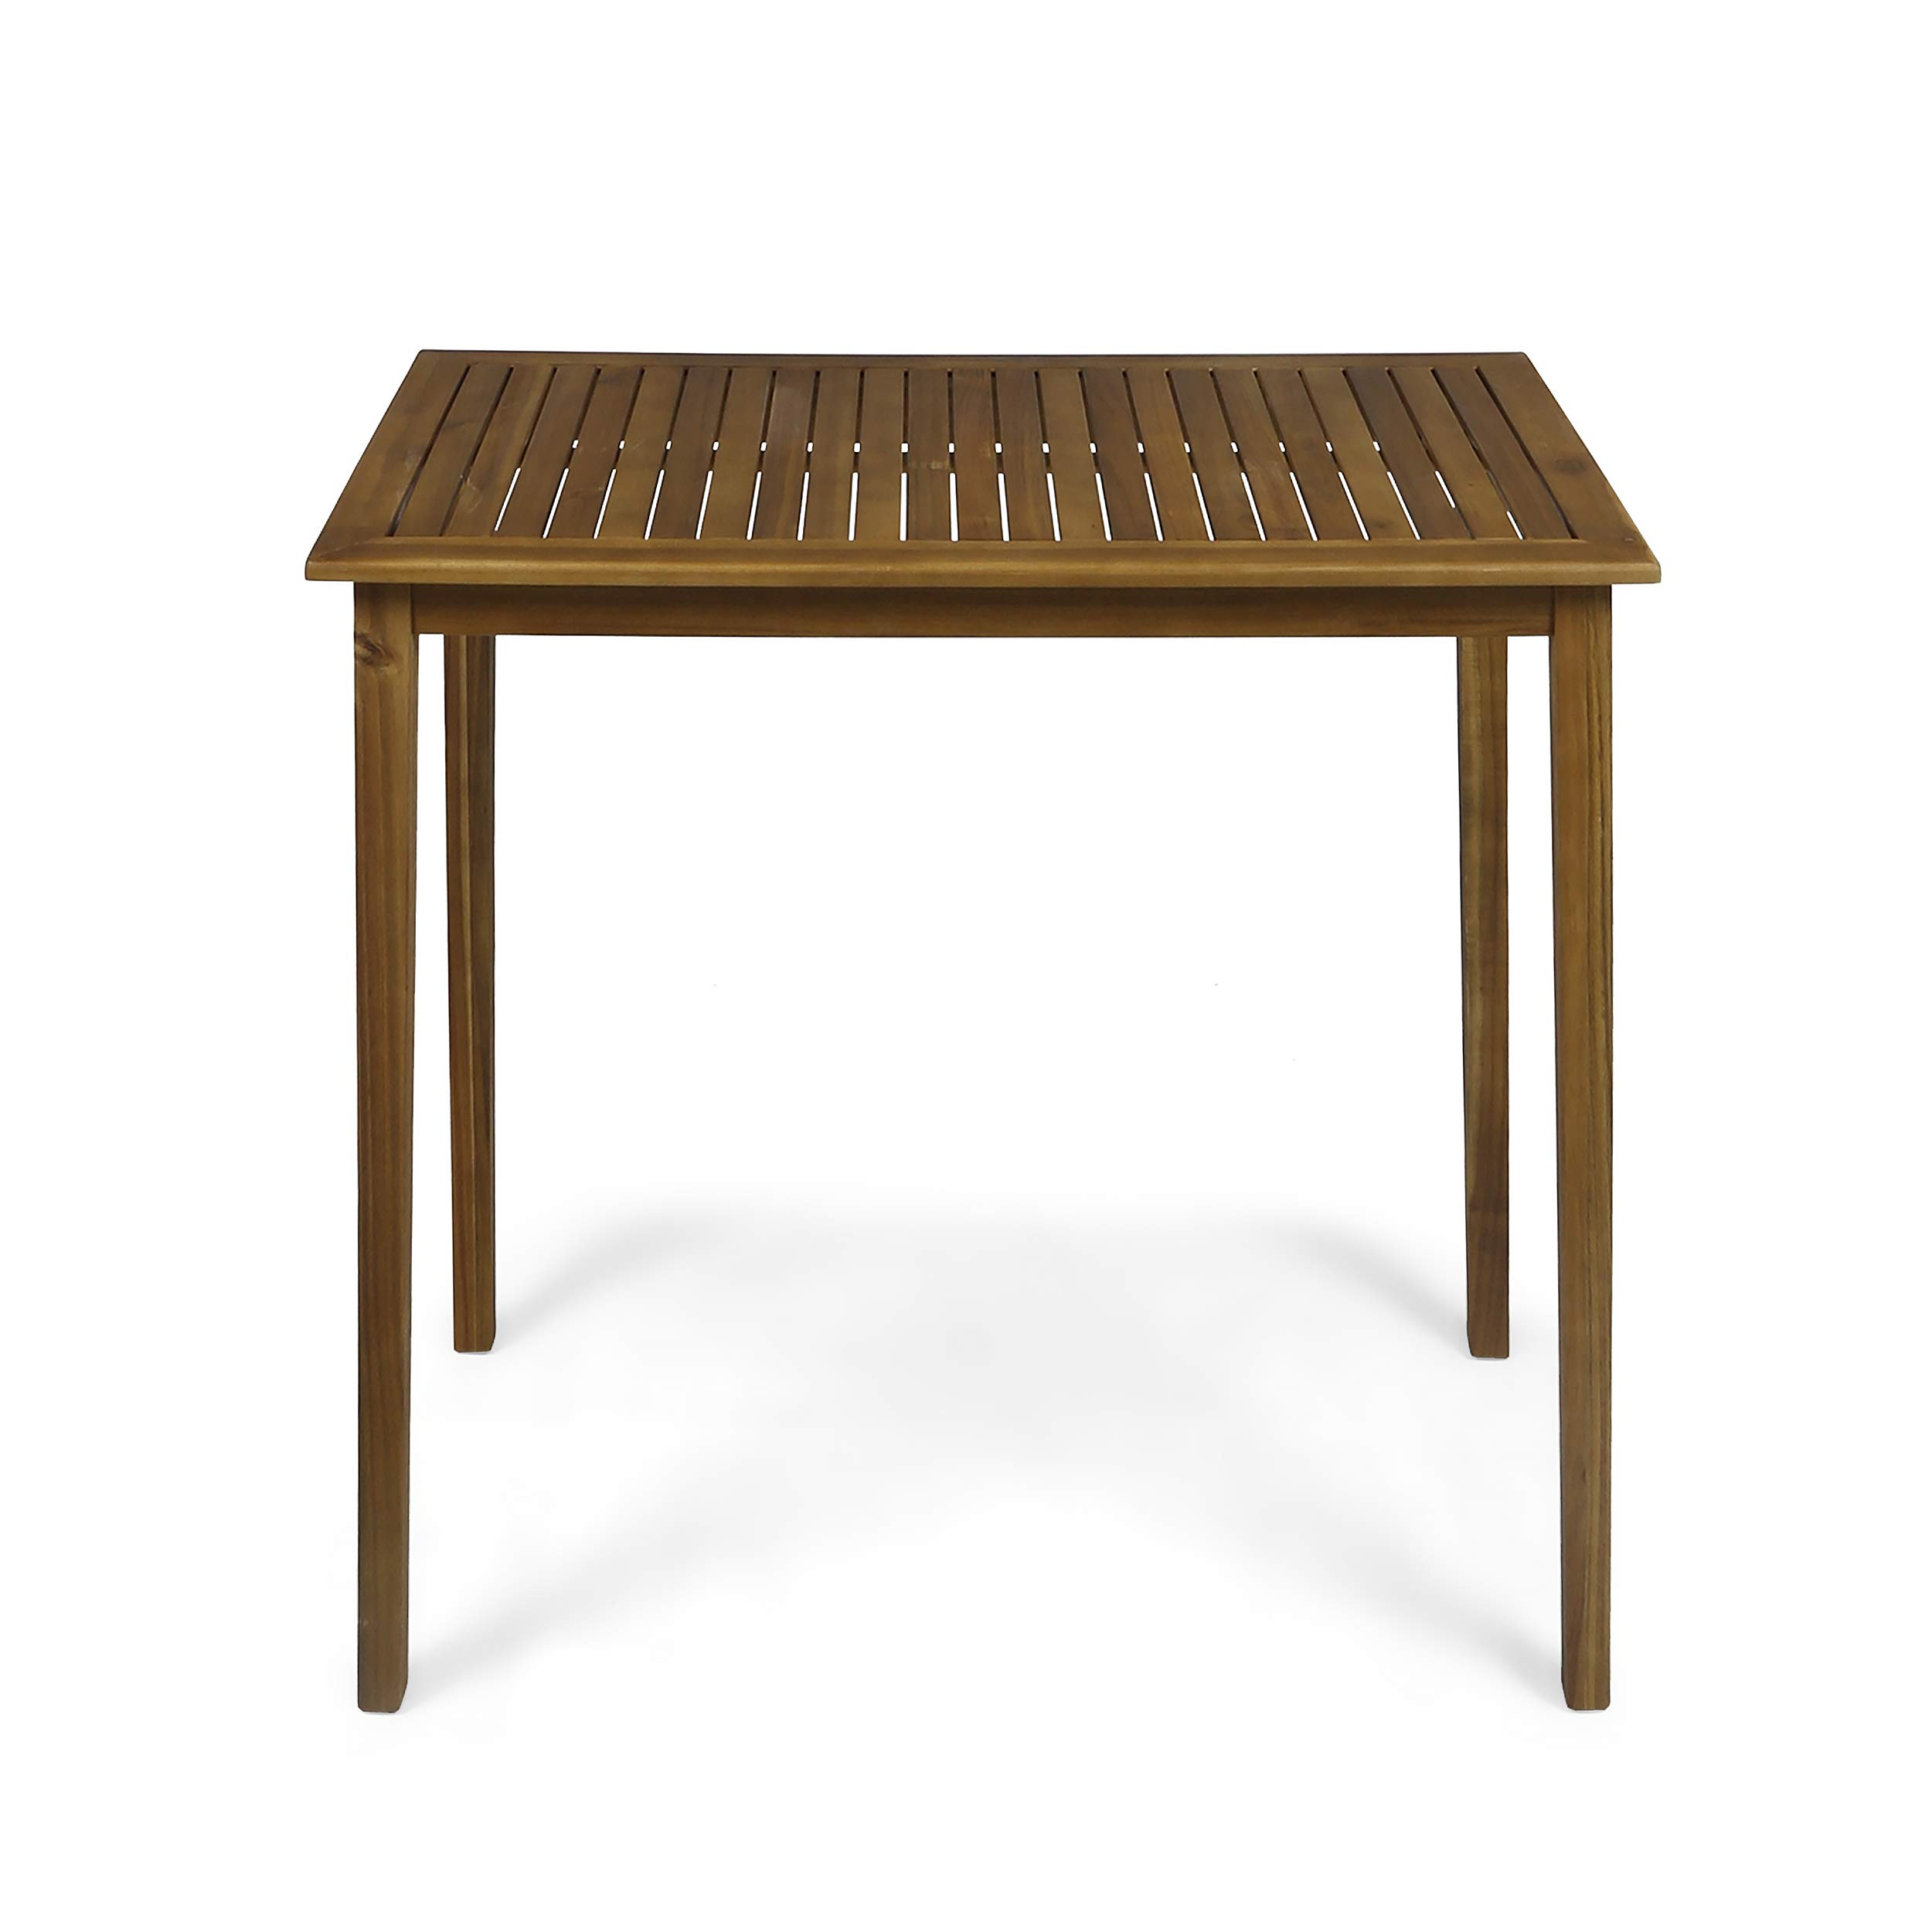 Great Deal Furniture Teresa Outdoor Minimalist Acacia Wood Rectangle Bar Table - Teak Finish